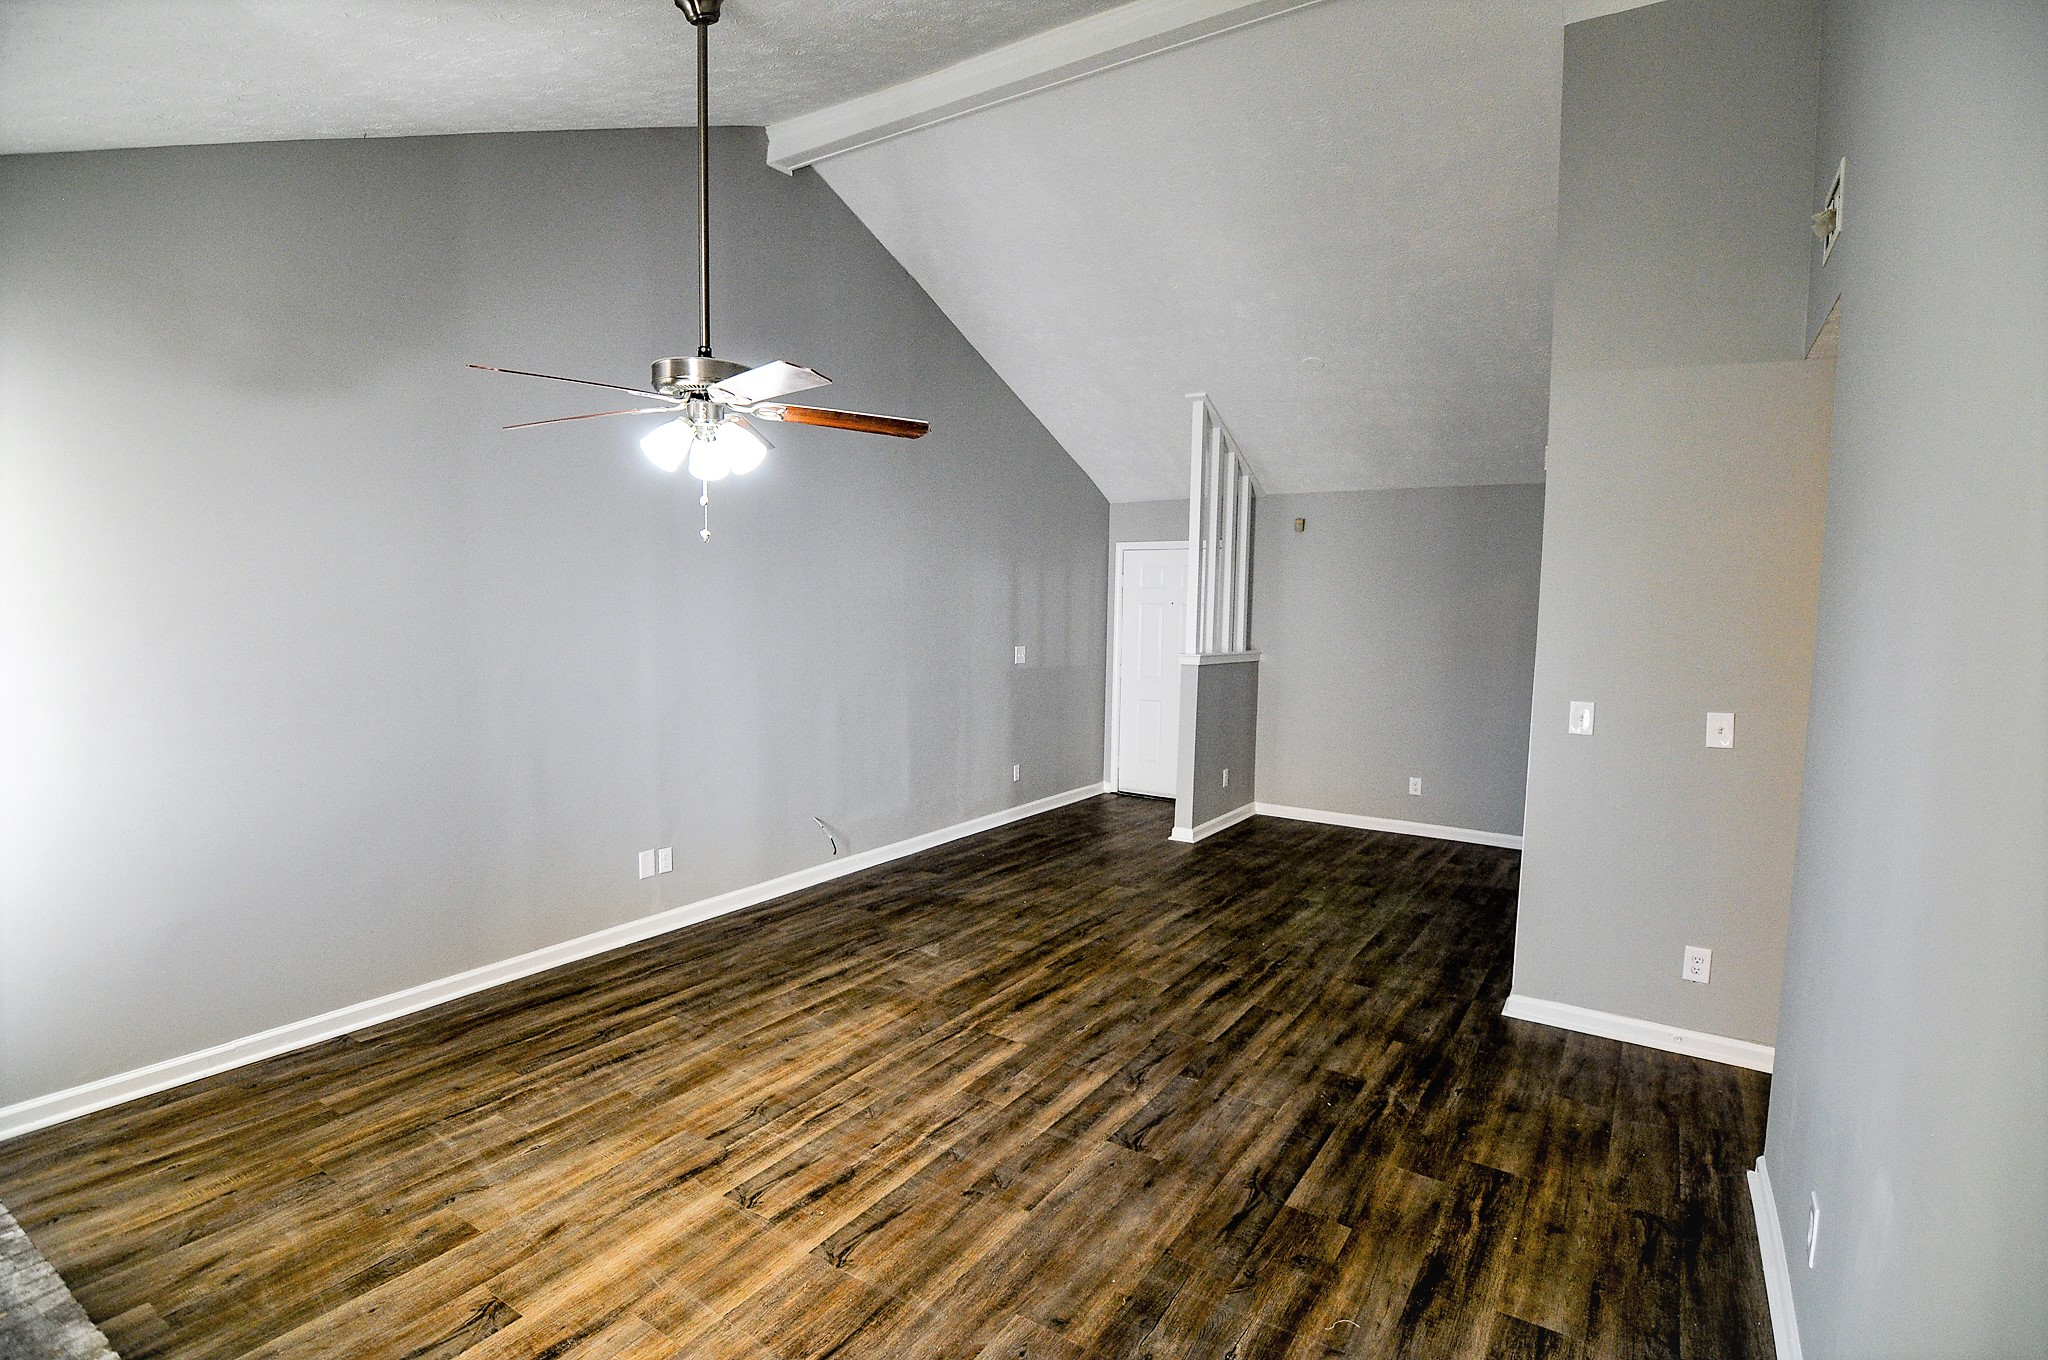 FOR RENT IN MONTGOMERY! 3 BED 2 BATH AT 3108 HERBERT DRIVE